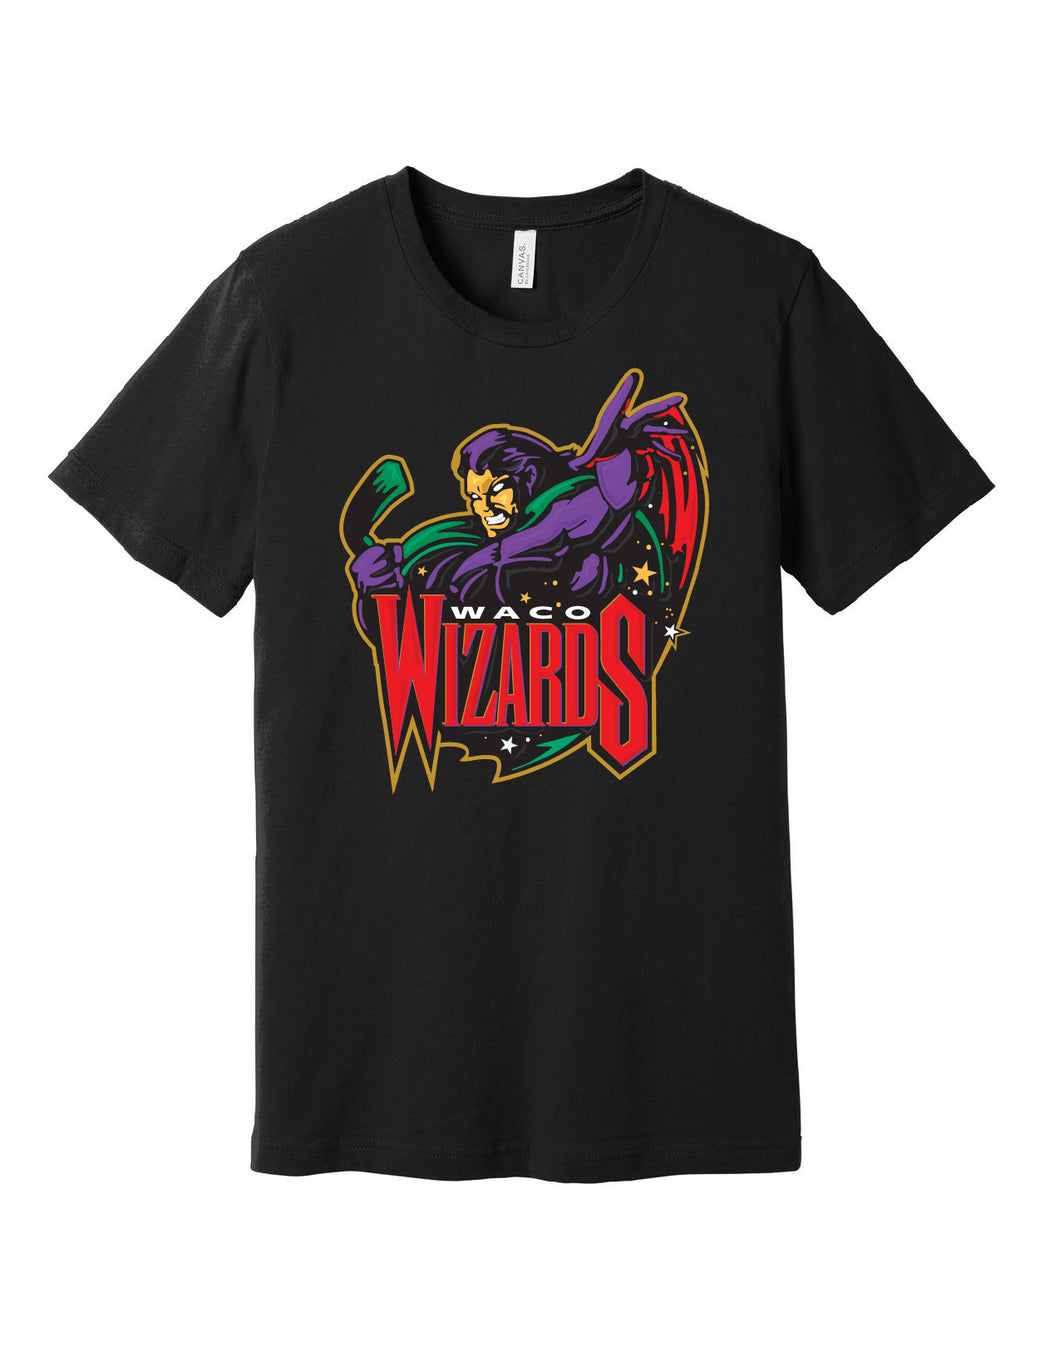 Wizards Shirt